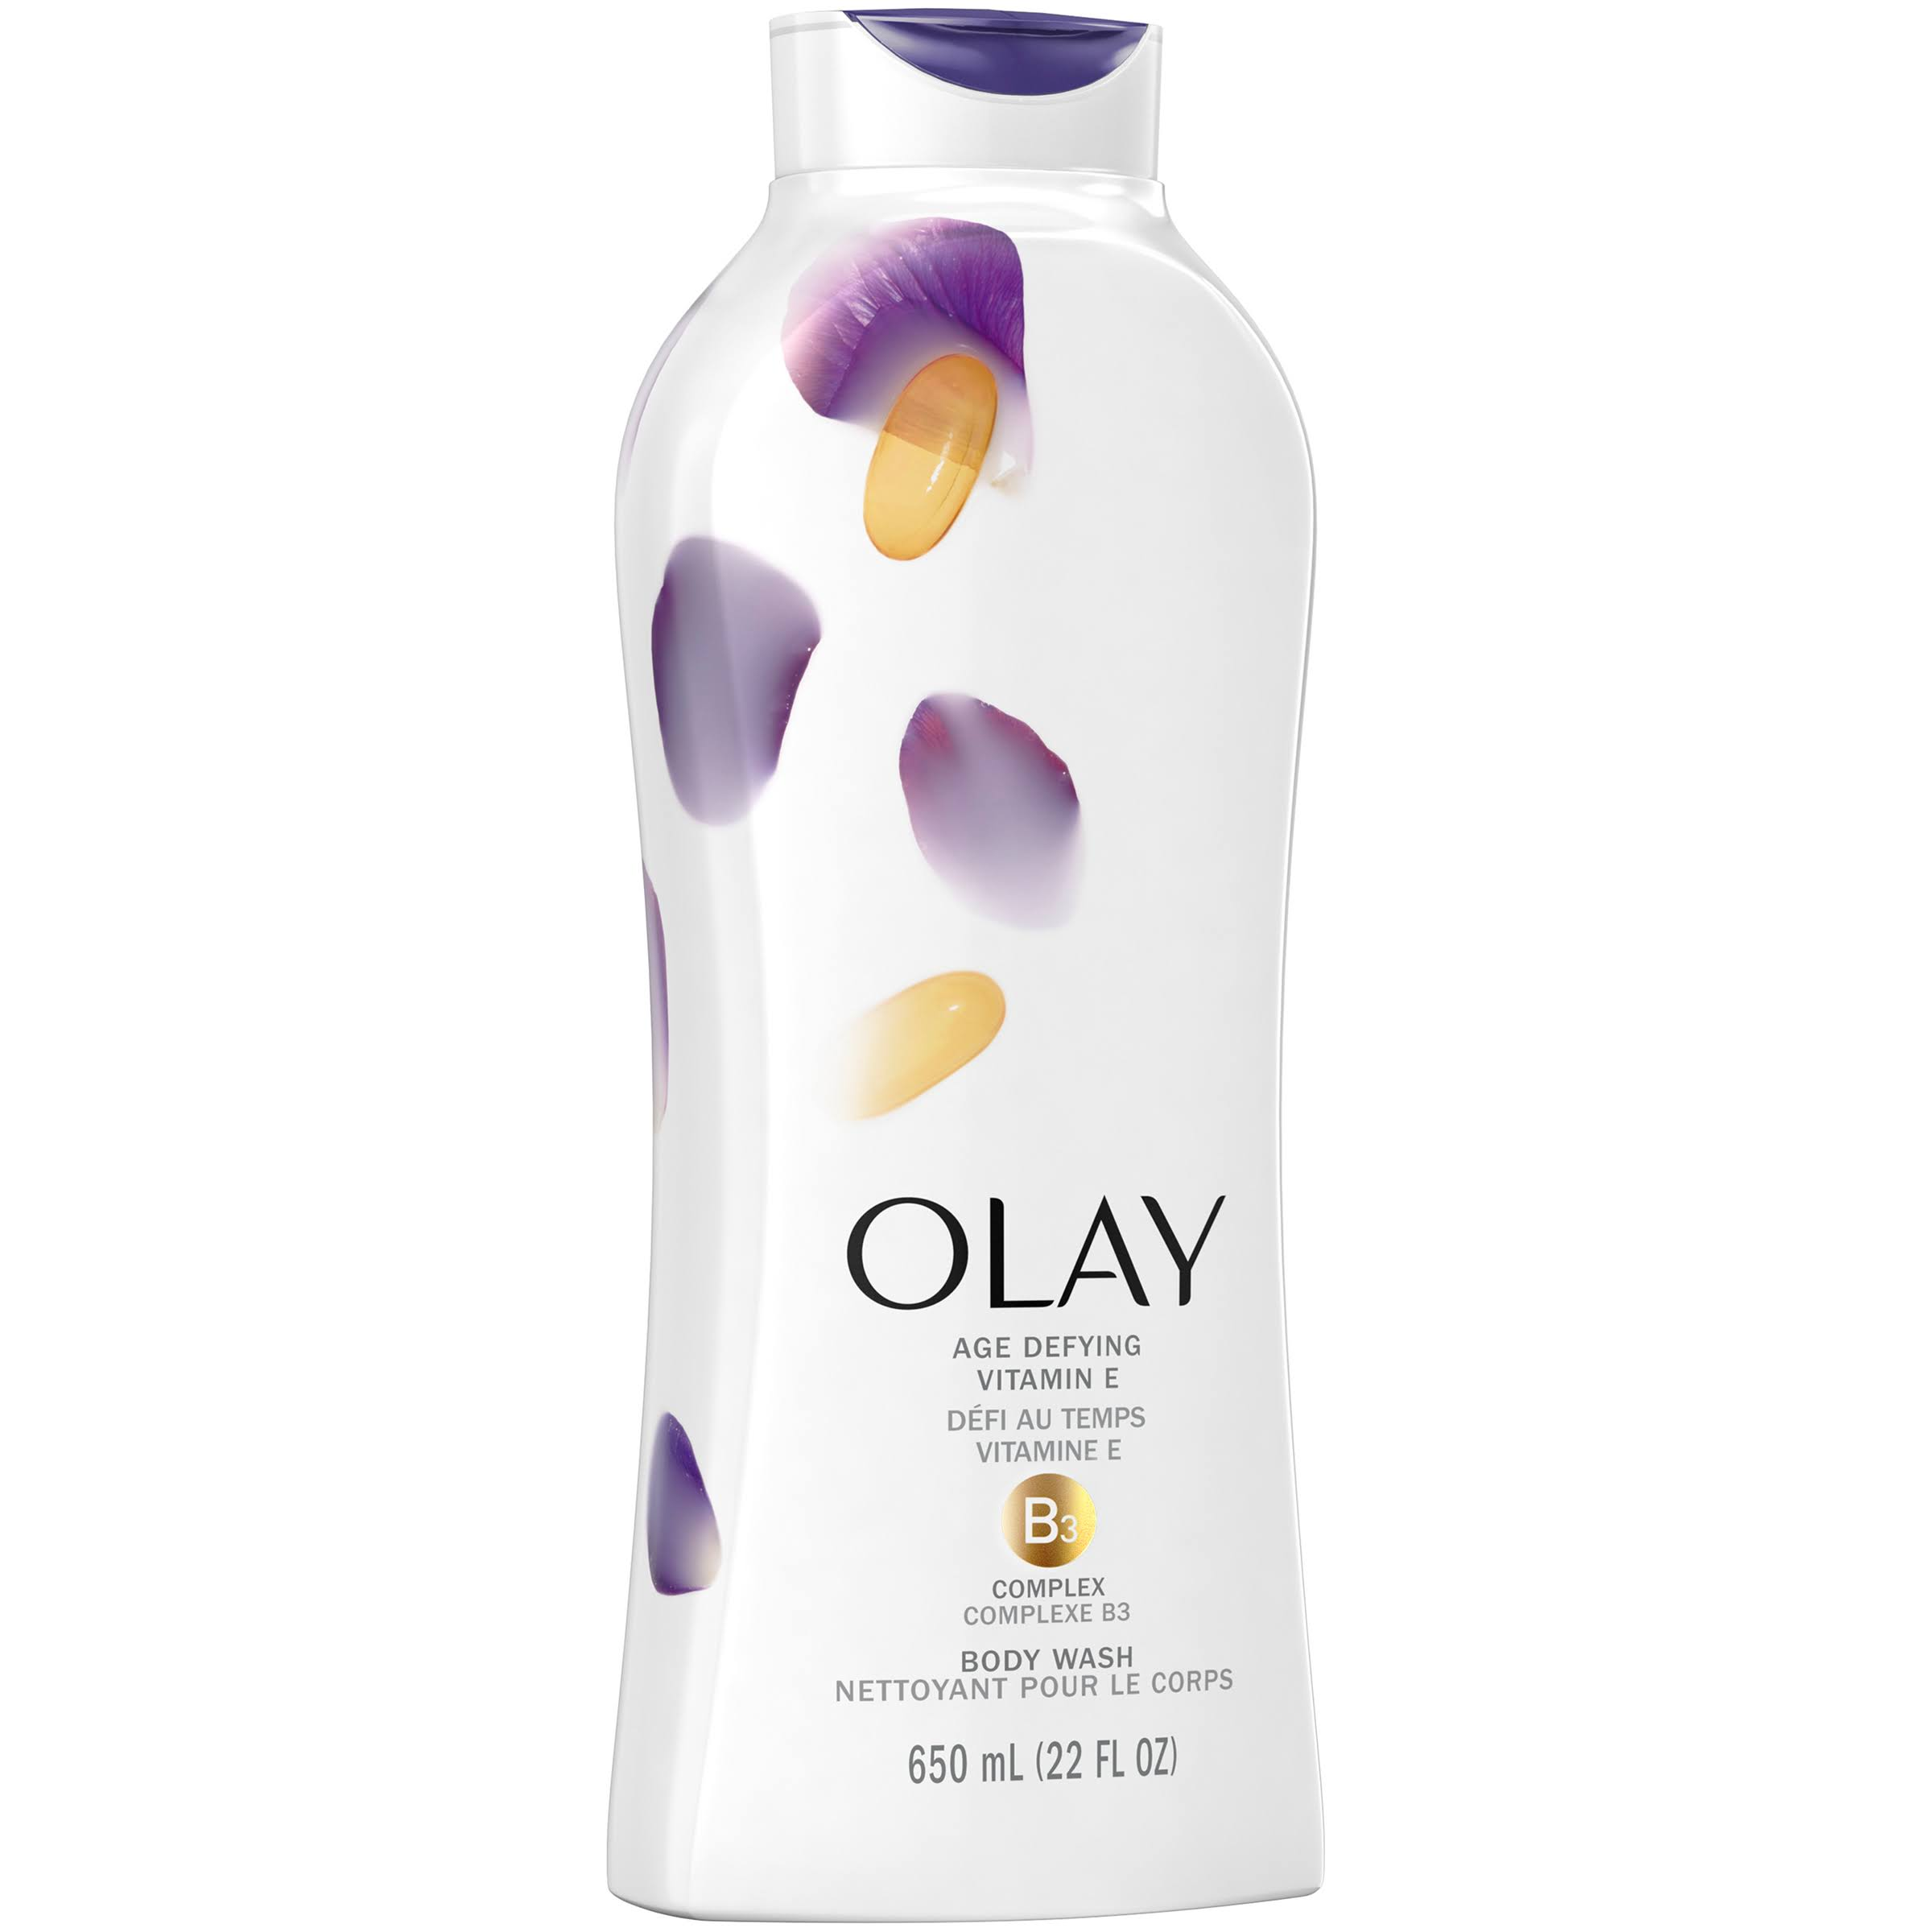 Olay Age Defying with Vitamin E Body Wash - 650ml